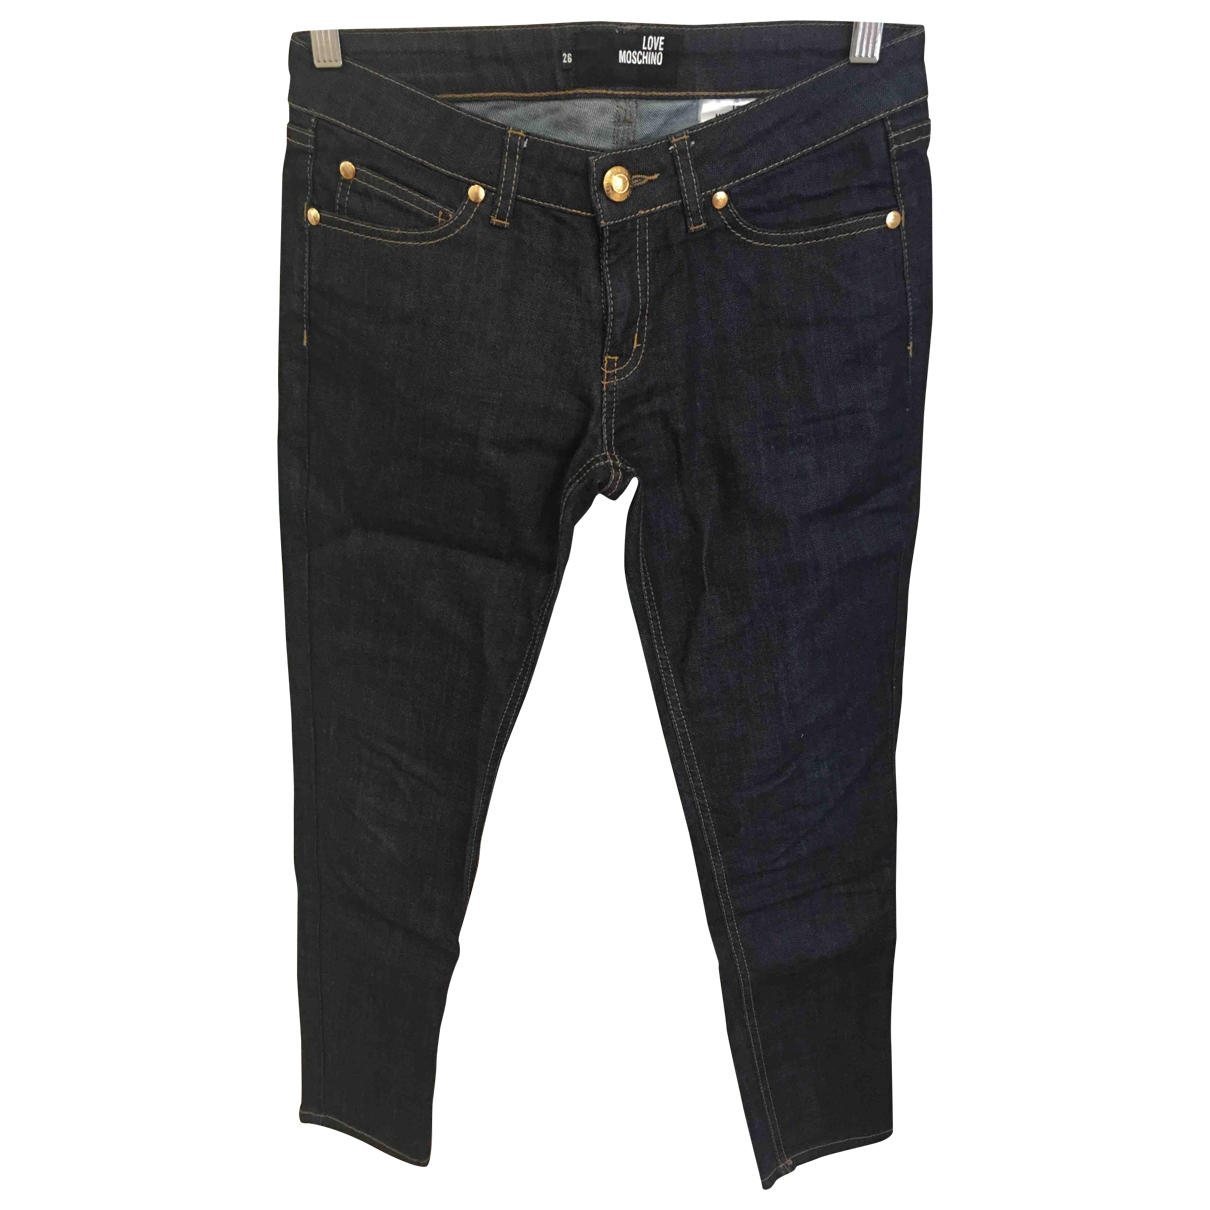 Moschino Love \N Denim - Jeans Jeans for Women 26 US